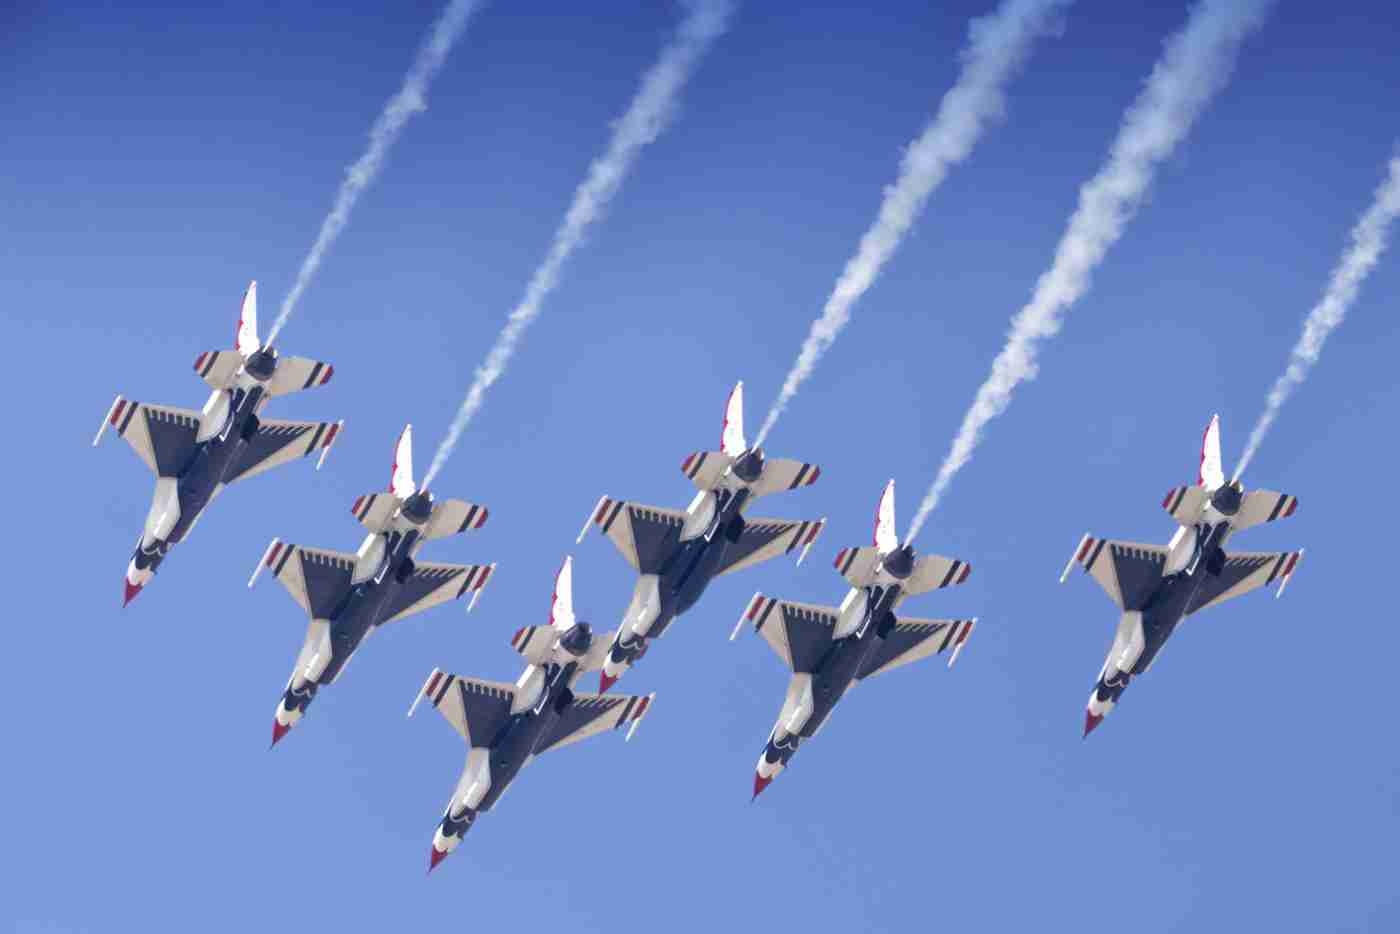 Air Force Thunderbird F-16s Delta Streaking Downward